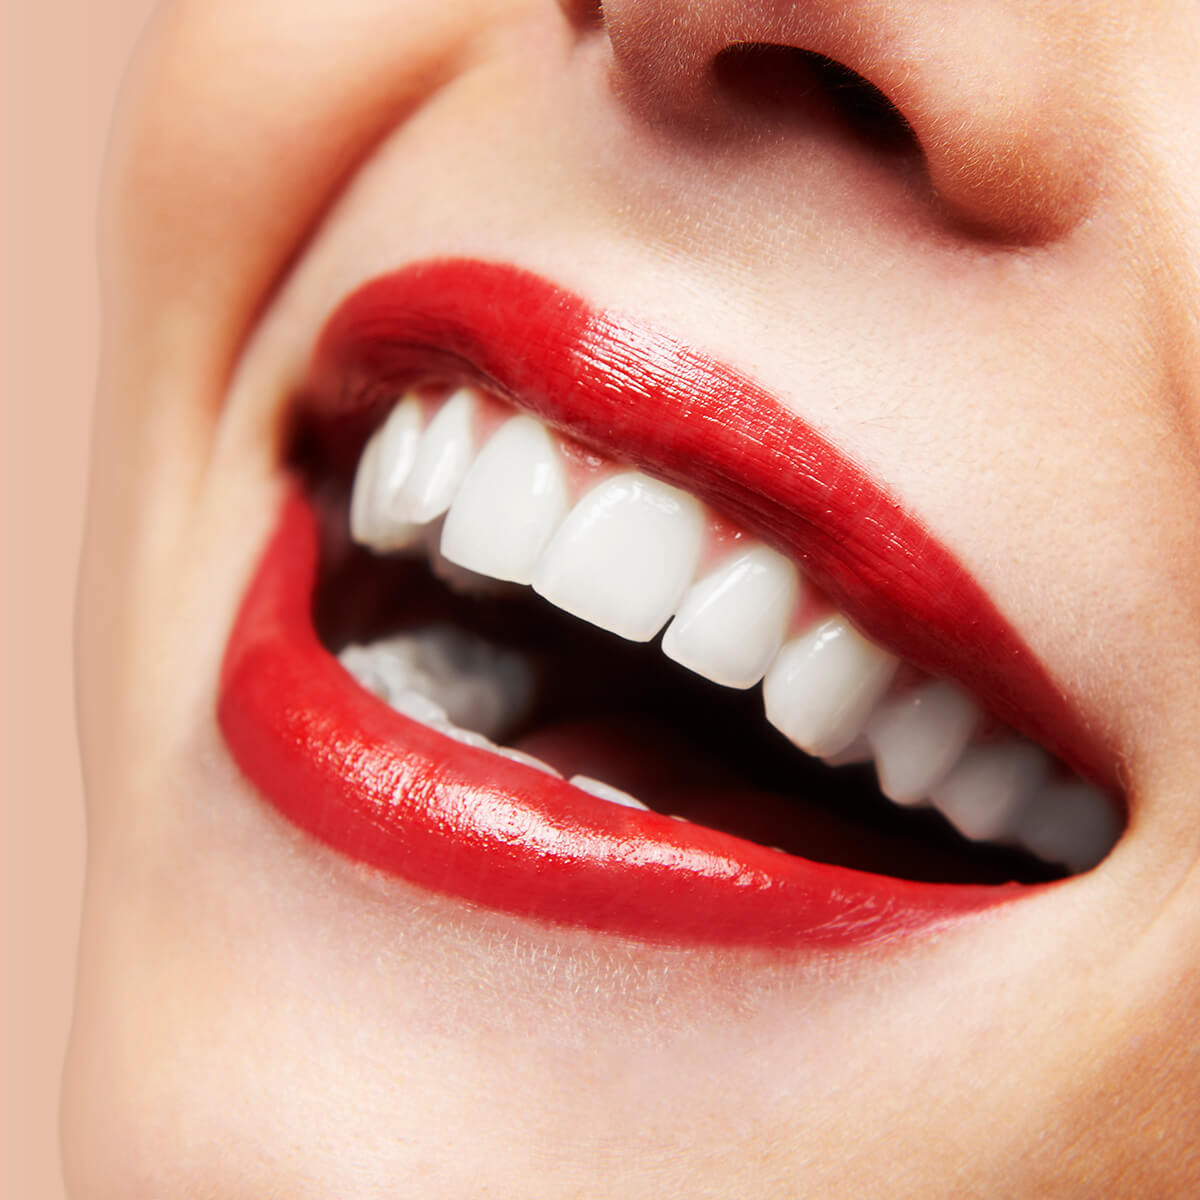 Fix Crooked Teeth with Porcelain Veneers in El Dorado Area